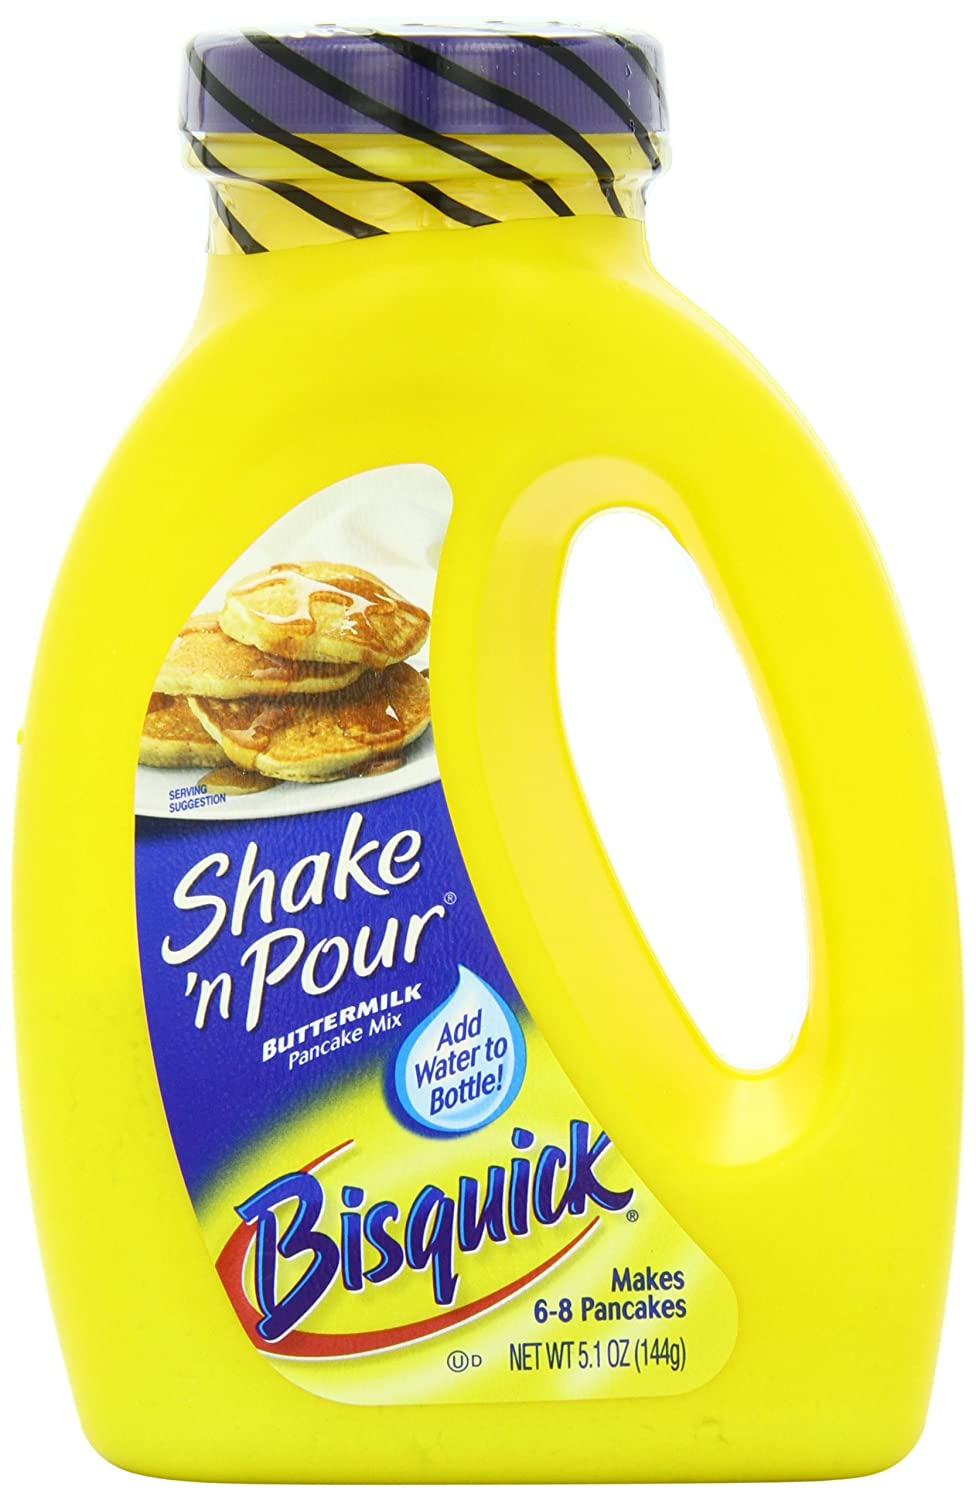 Bisquick Shake 'N Pour Buttermilk Pancake Mix, 5.1-Ounce Containers (Pack of 12)